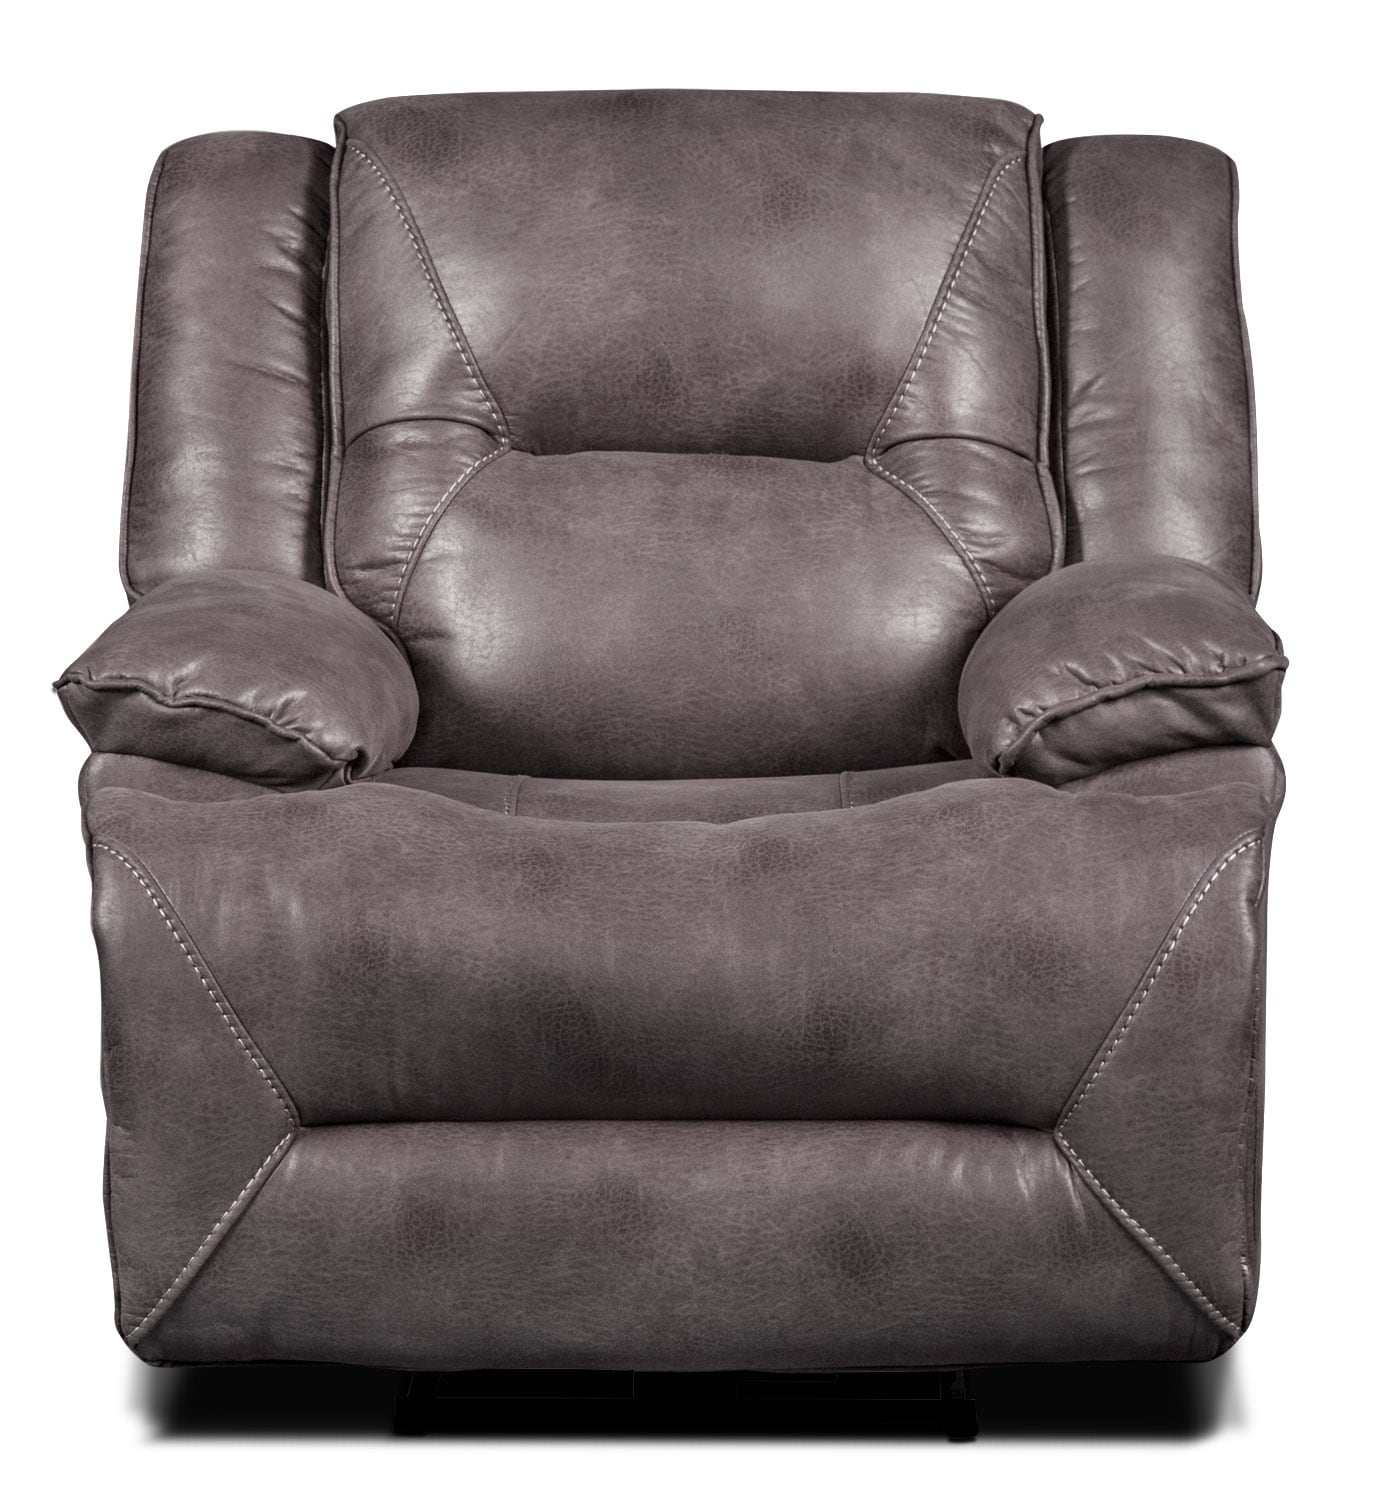 Lancer Faux Suede Power Reclining Chair Grey The Brick